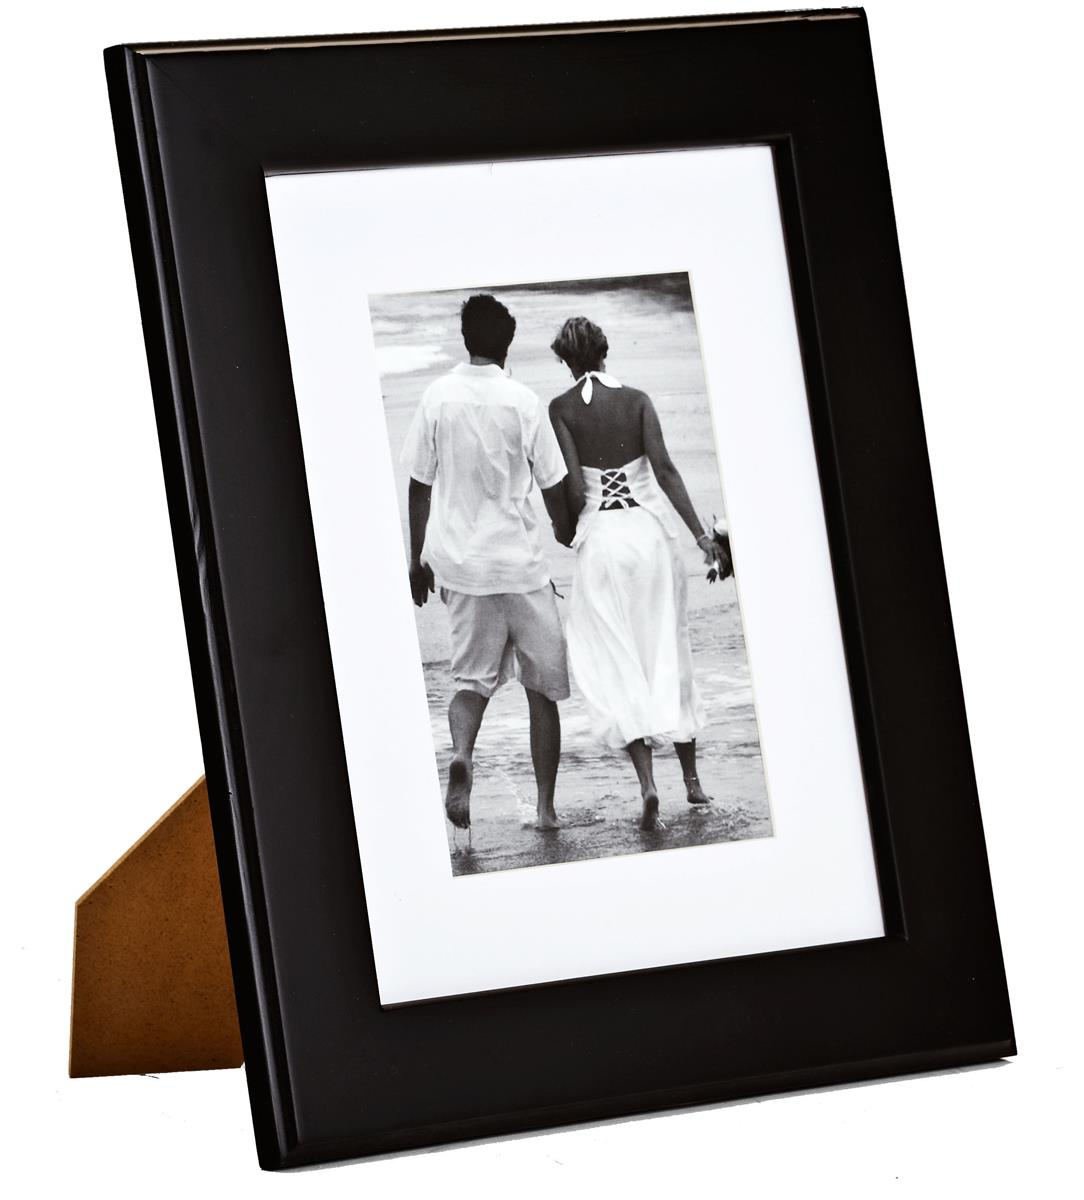 Black Wood Matted 5x7 Photo Frame | Desktop or Wall Mounting